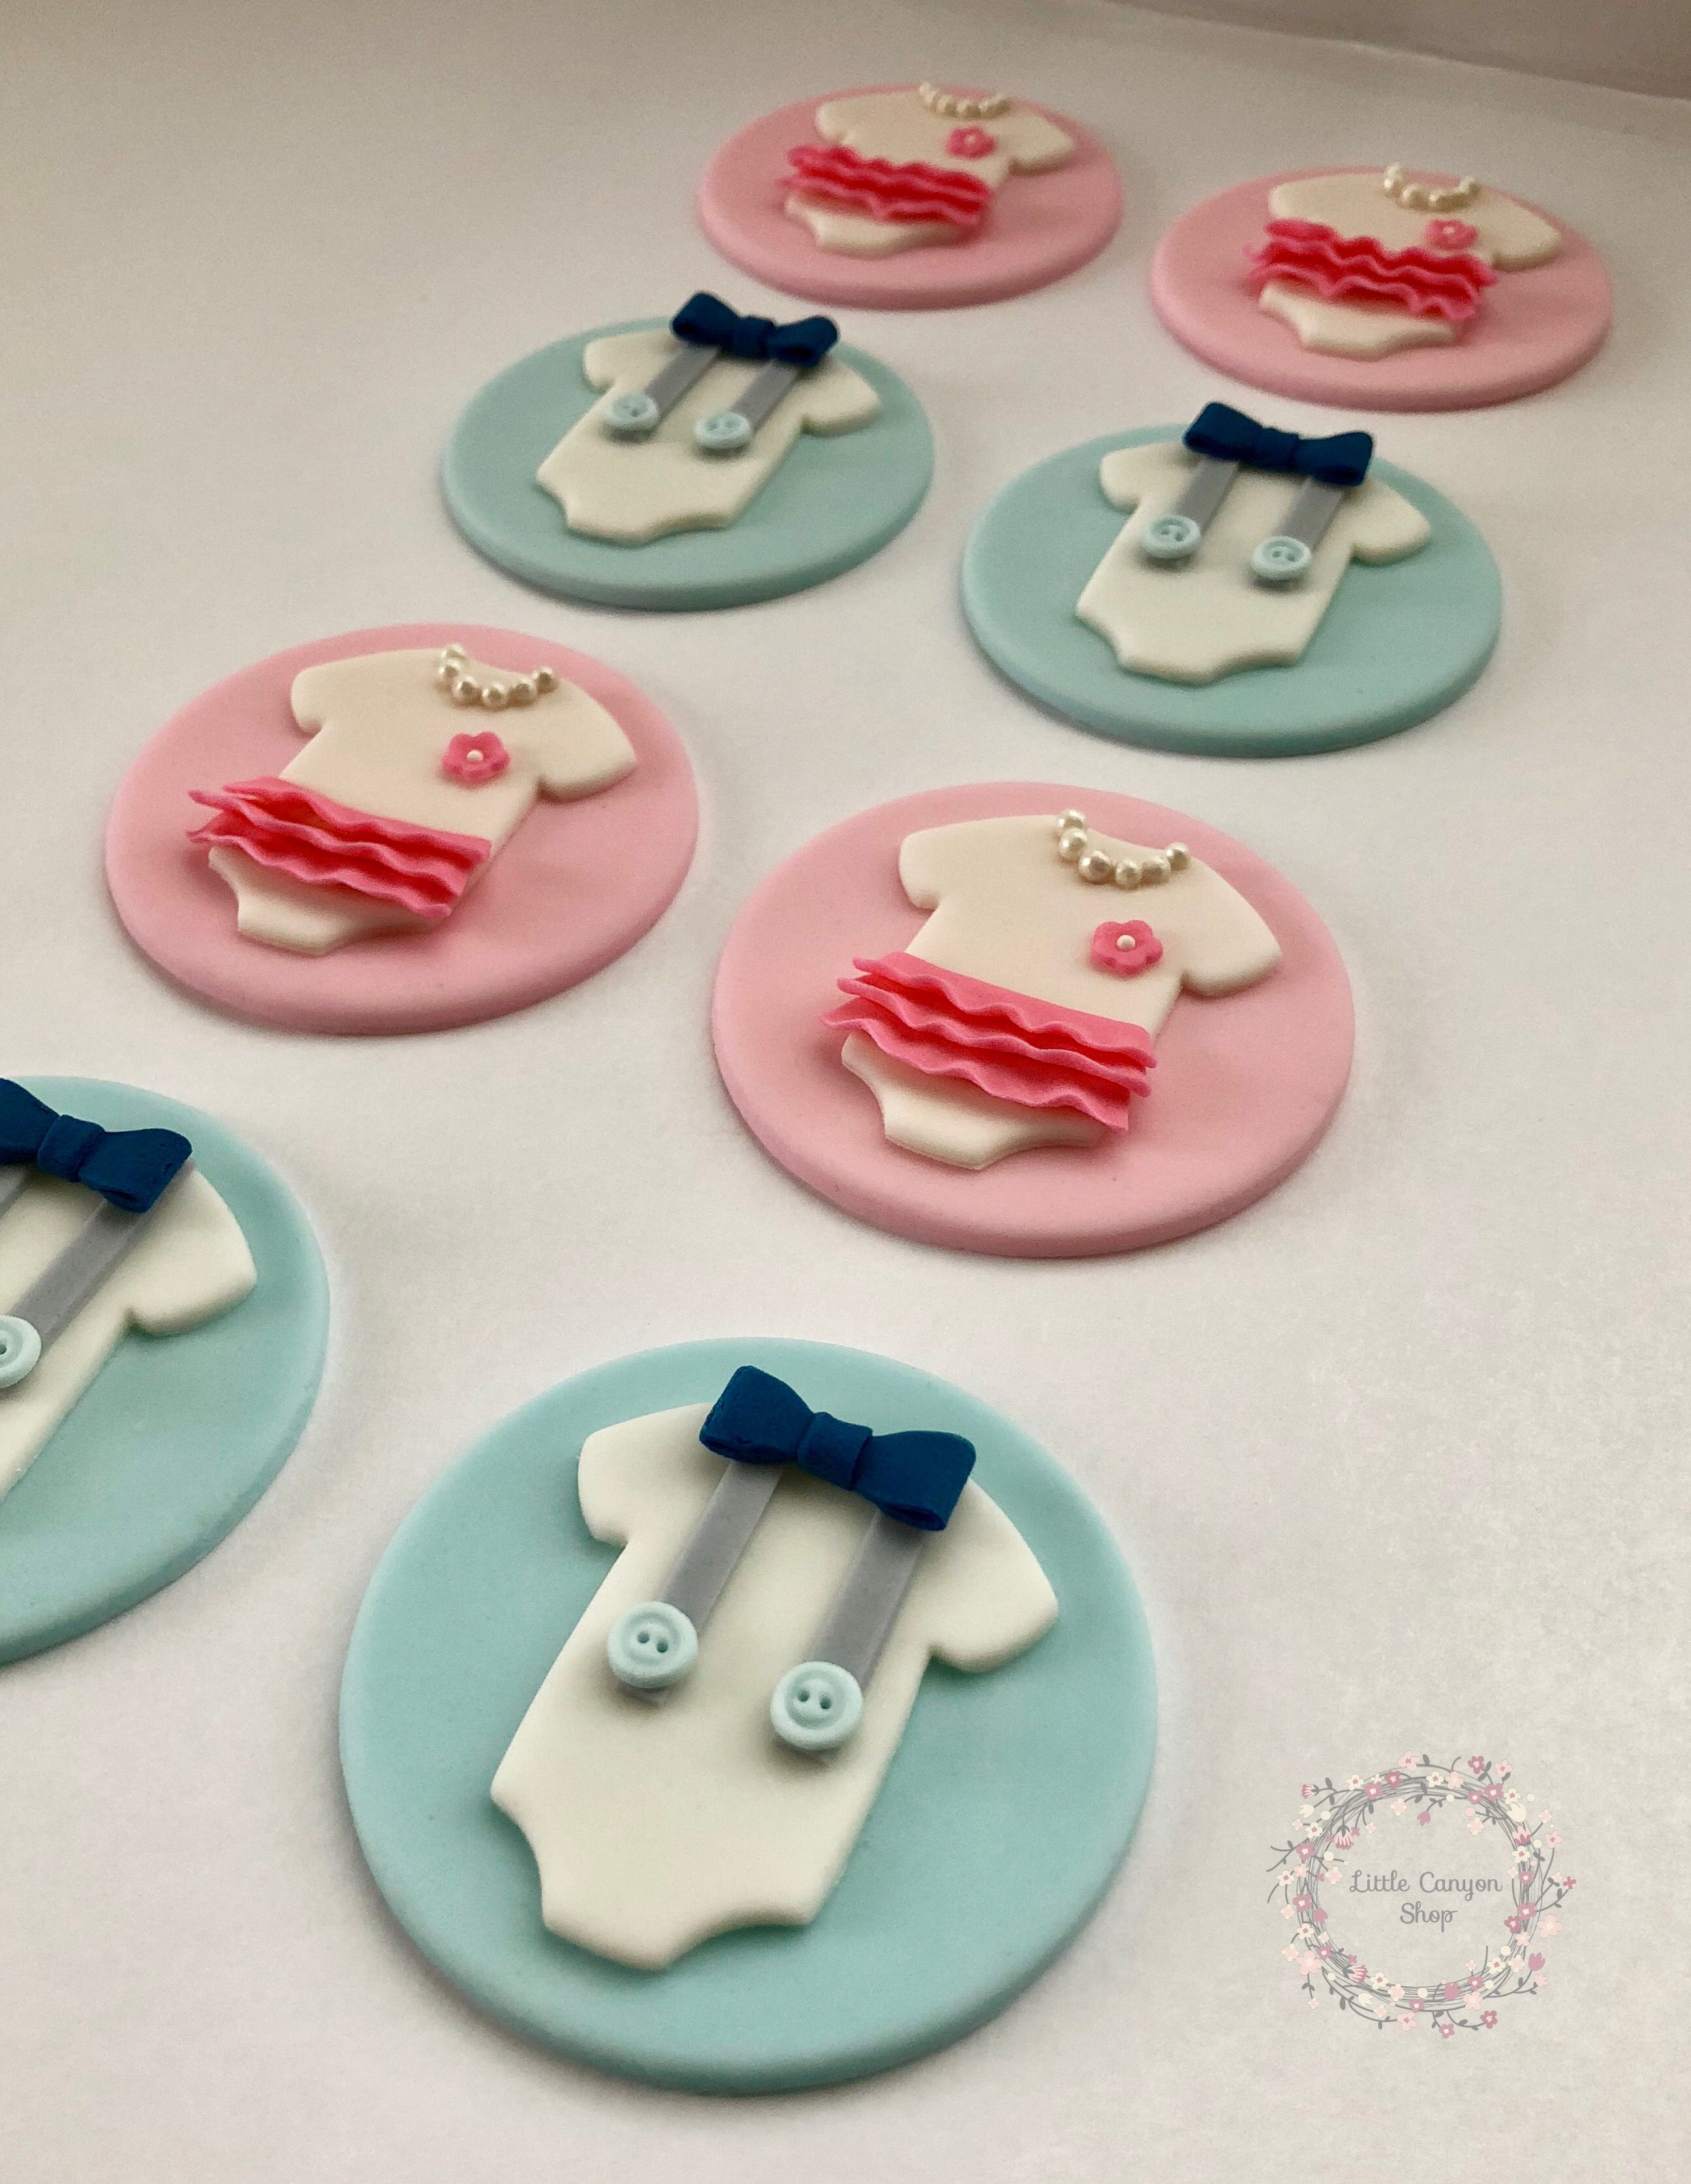 Baby Shower Fondant Cupcake Toppers Gender Reveal Toppers He Or She Baby Cupcake Toppers Baby Shower Cupcake Toppers Gender Reveal Cupcakes